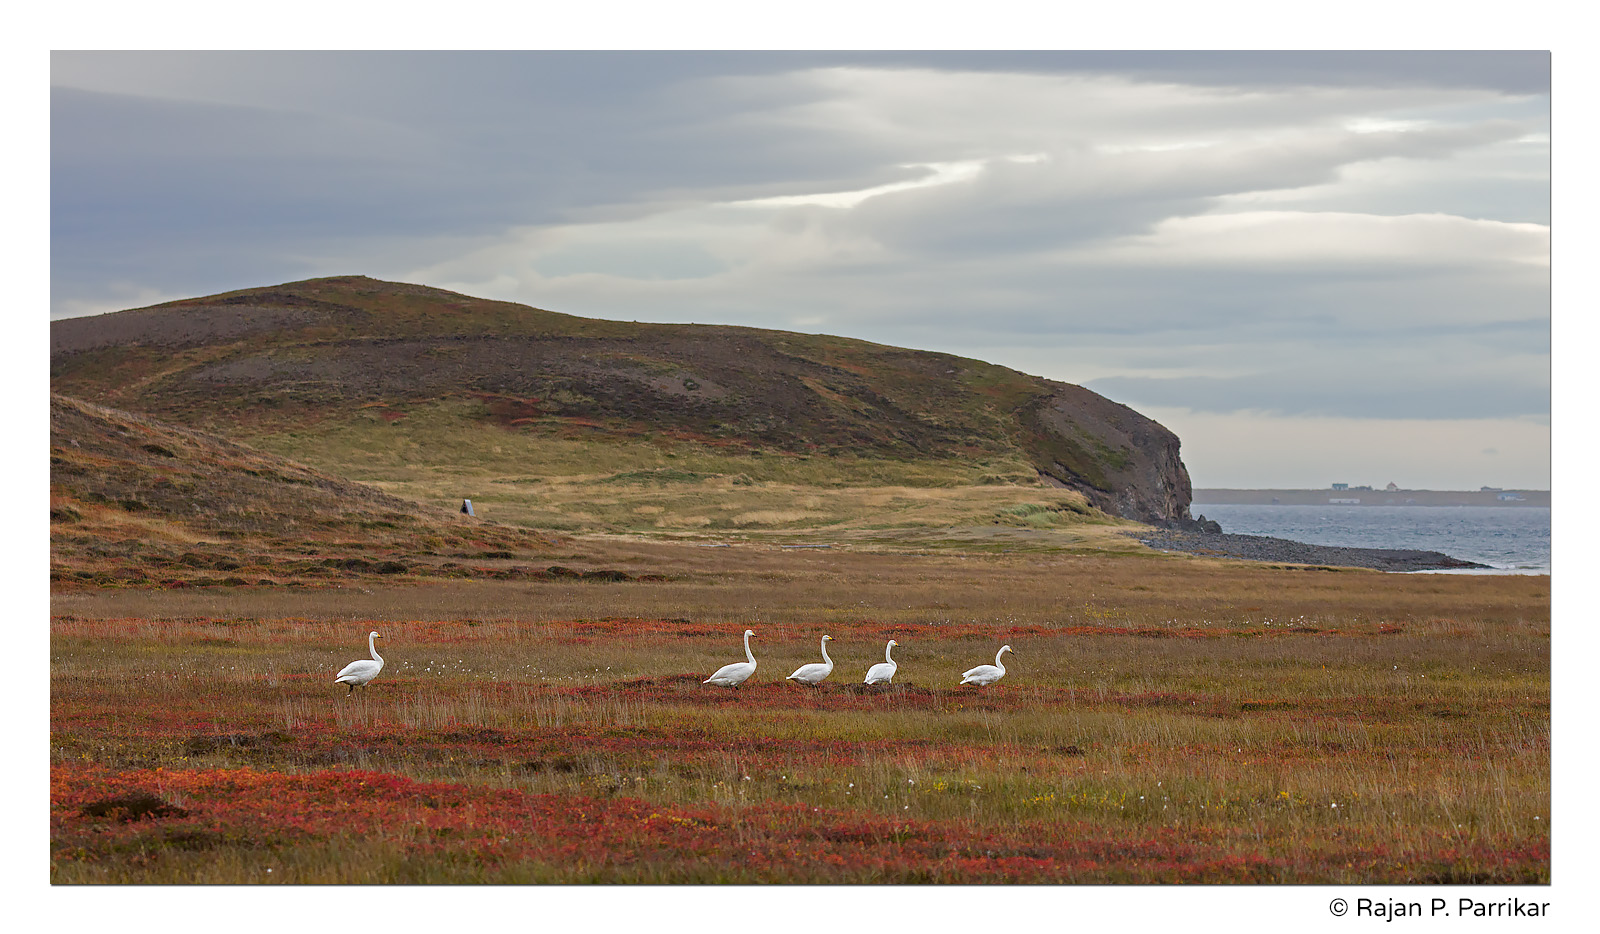 Whooper swans in Flateyjardalur, Iceland